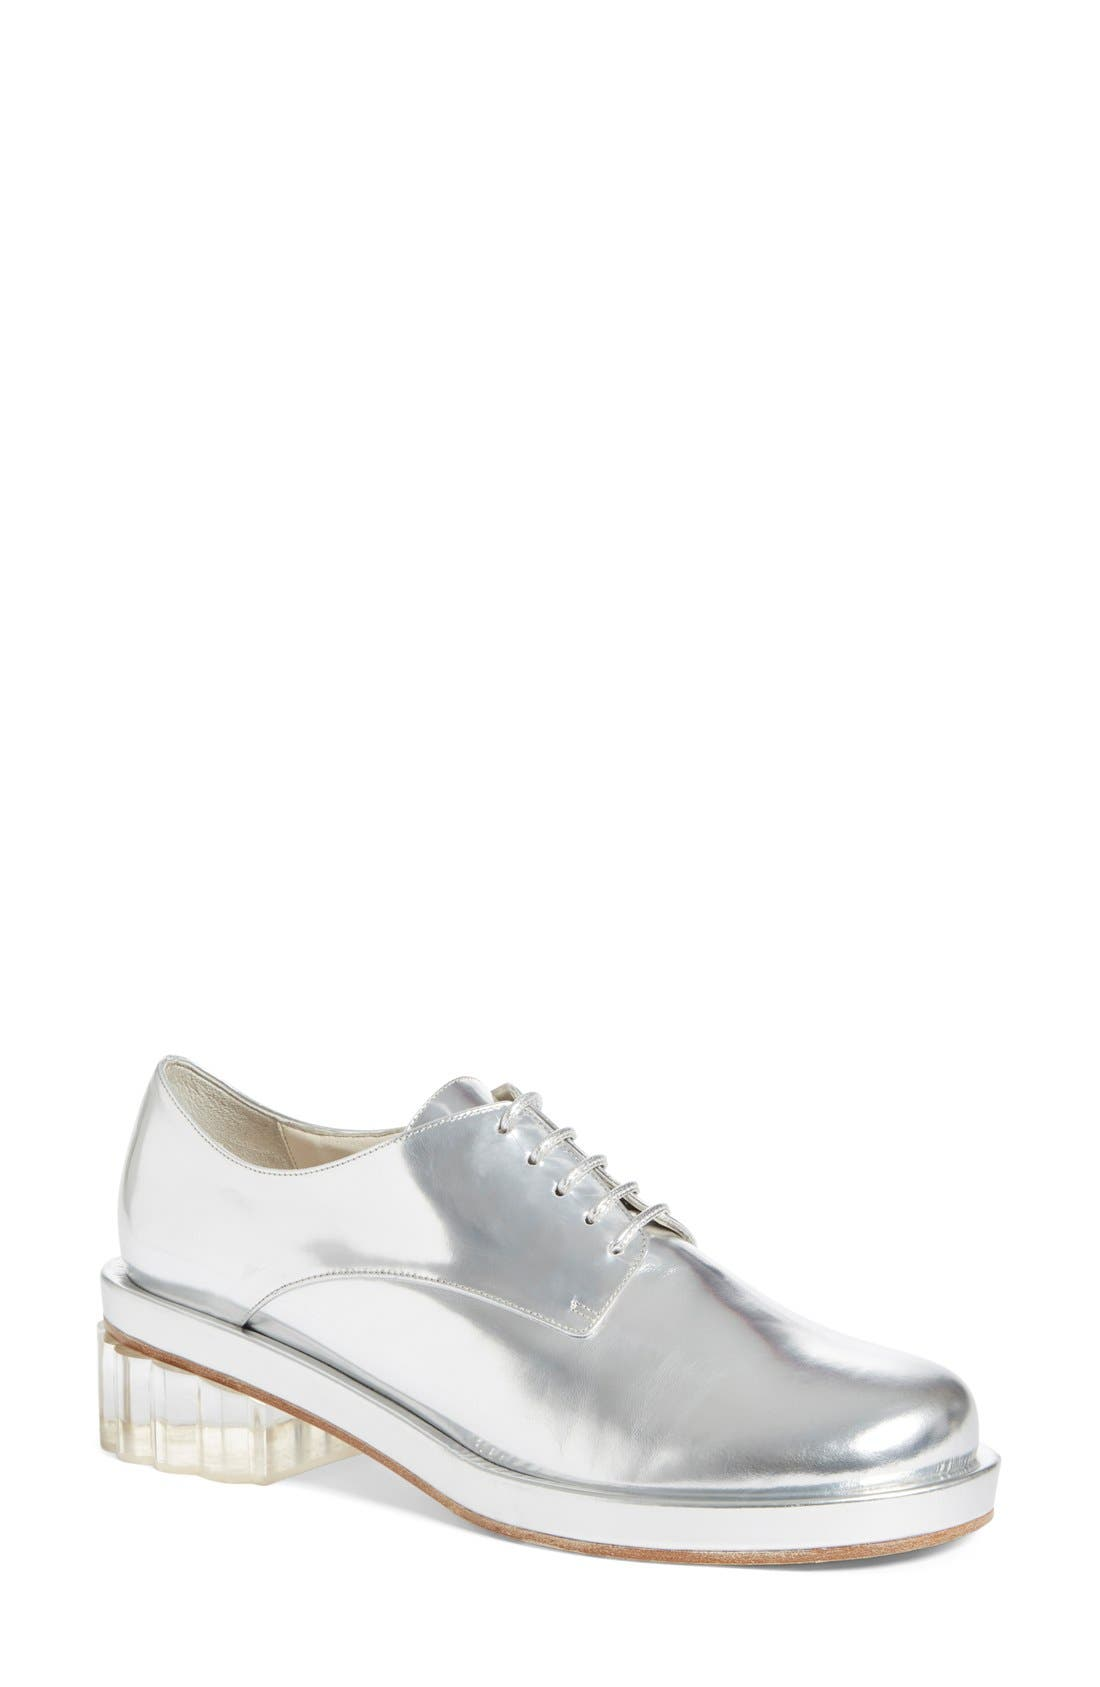 Alternate Image 1 Selected - Simone Rocha Metallic Lace-Up Oxford (Women)